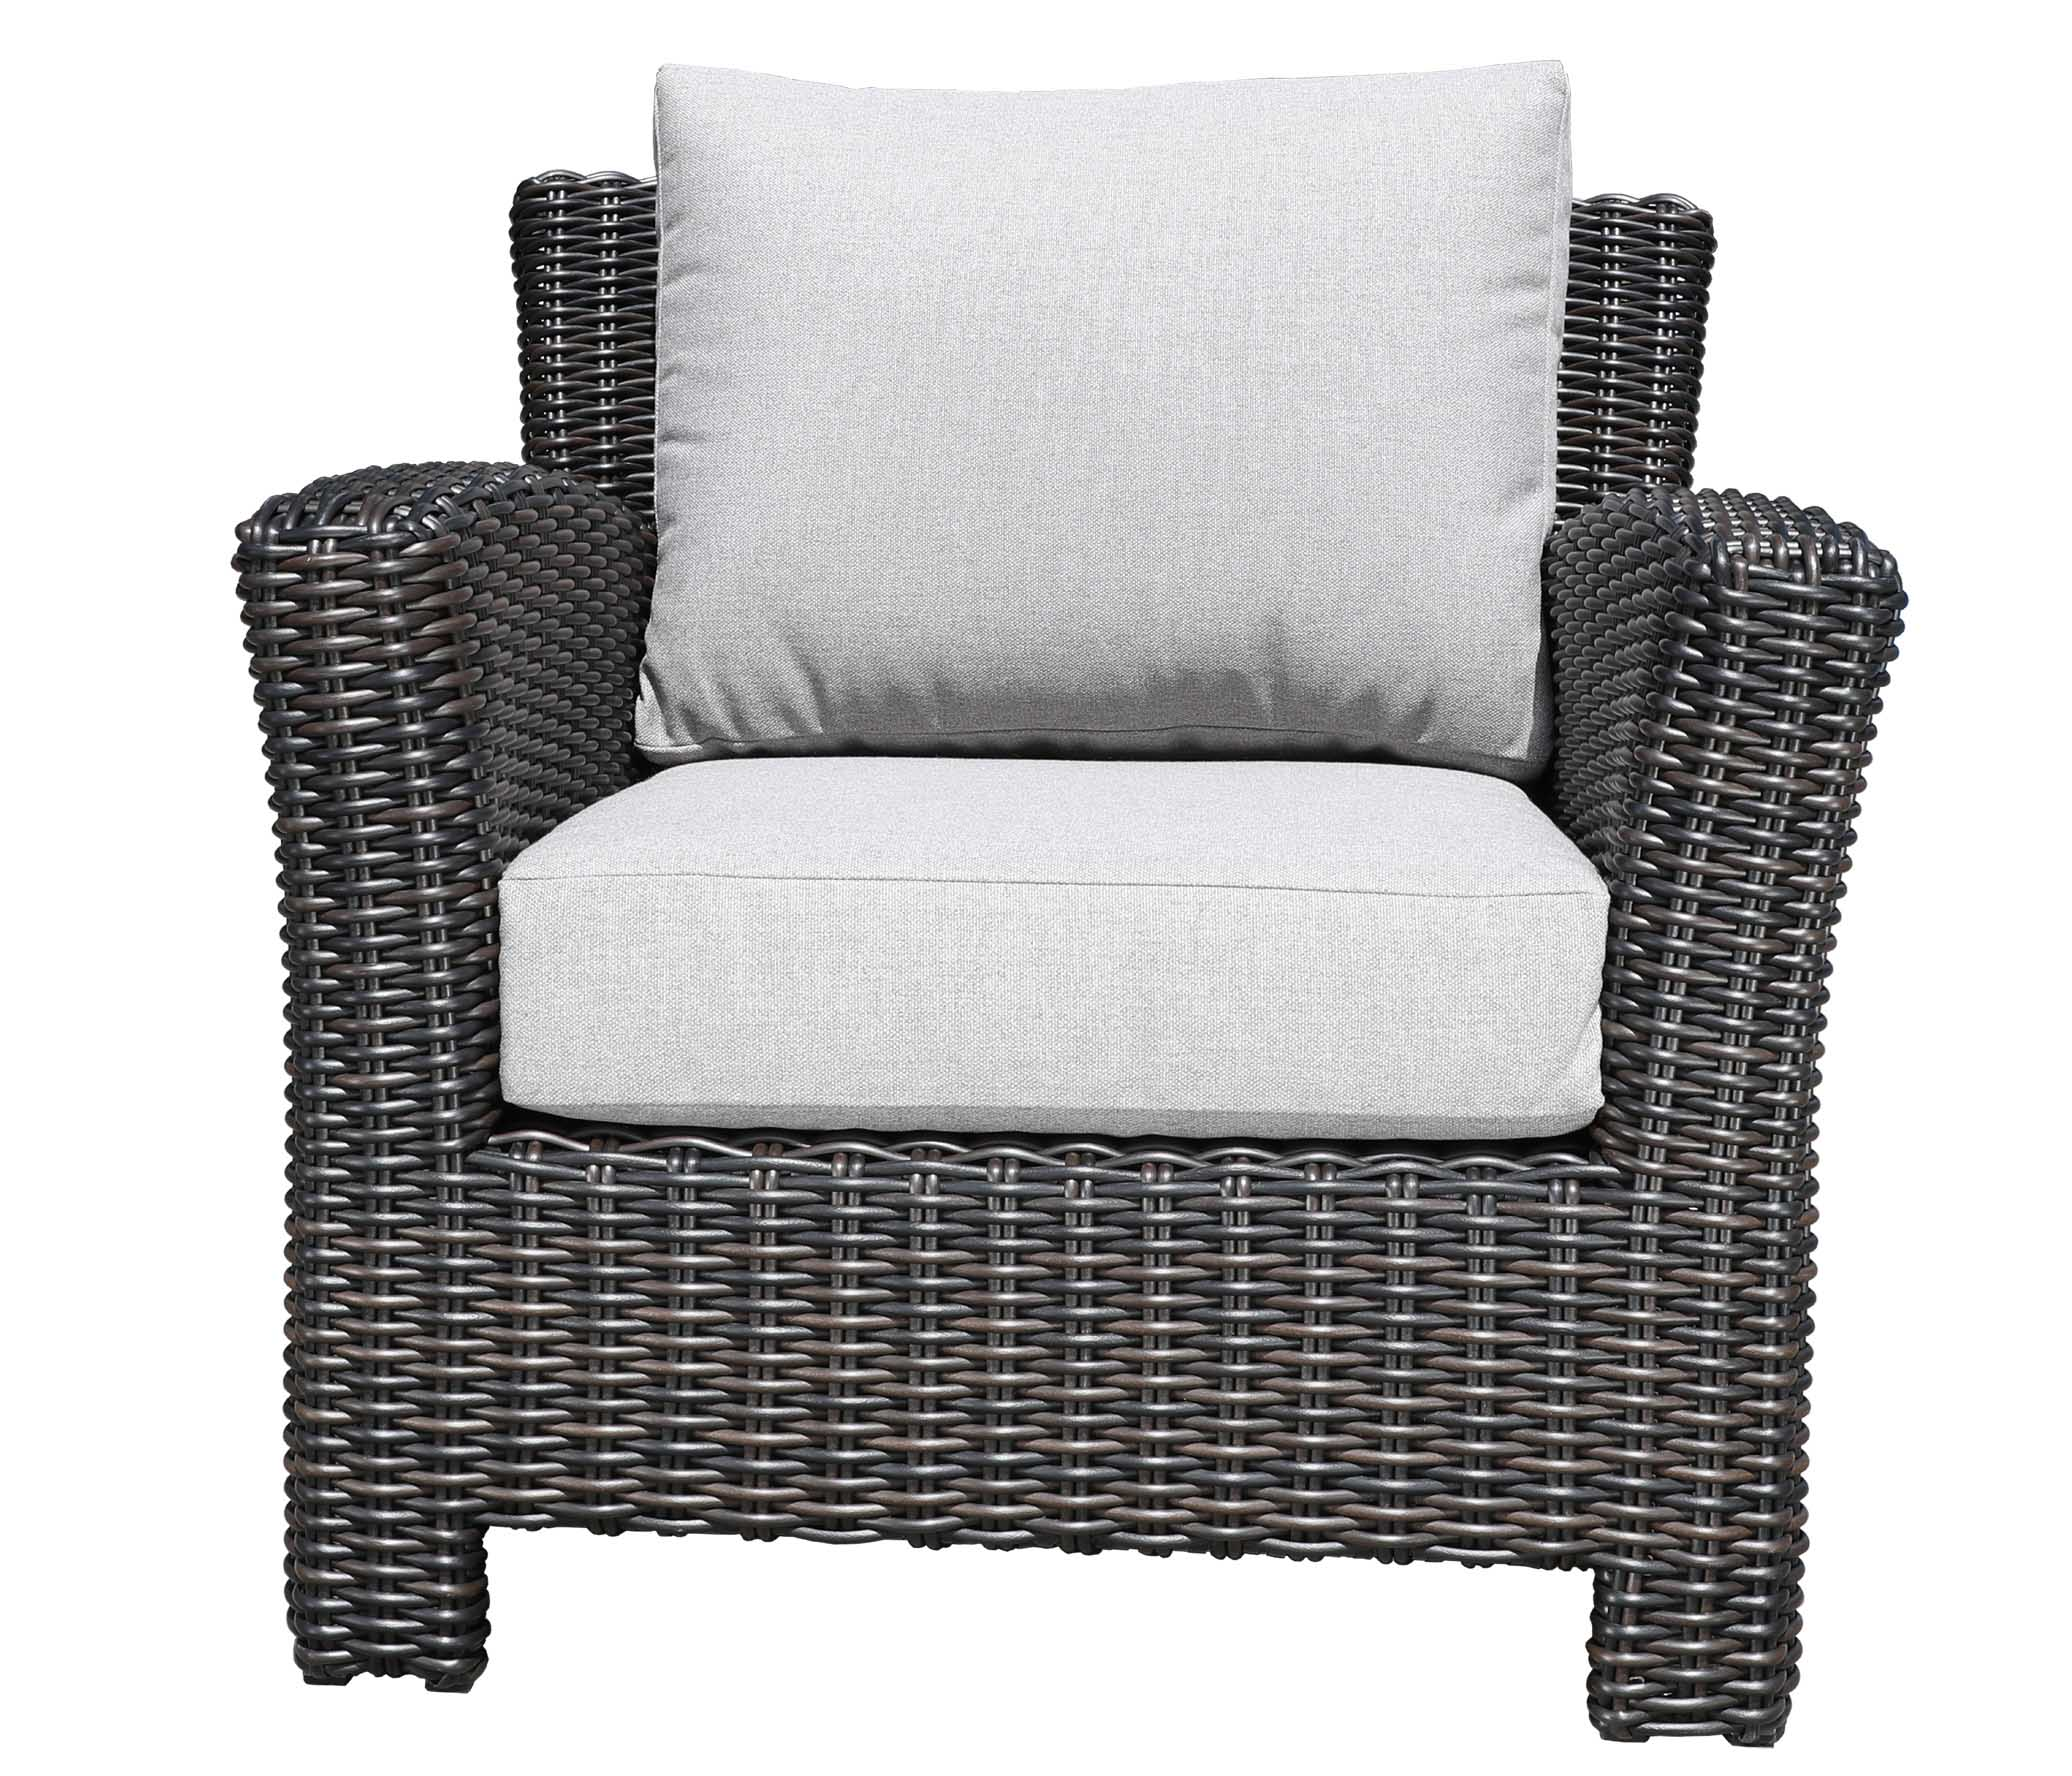 Oakville Outdoor Furniture Monterrey Deep Seat 9428 Patio Furniture Wicker